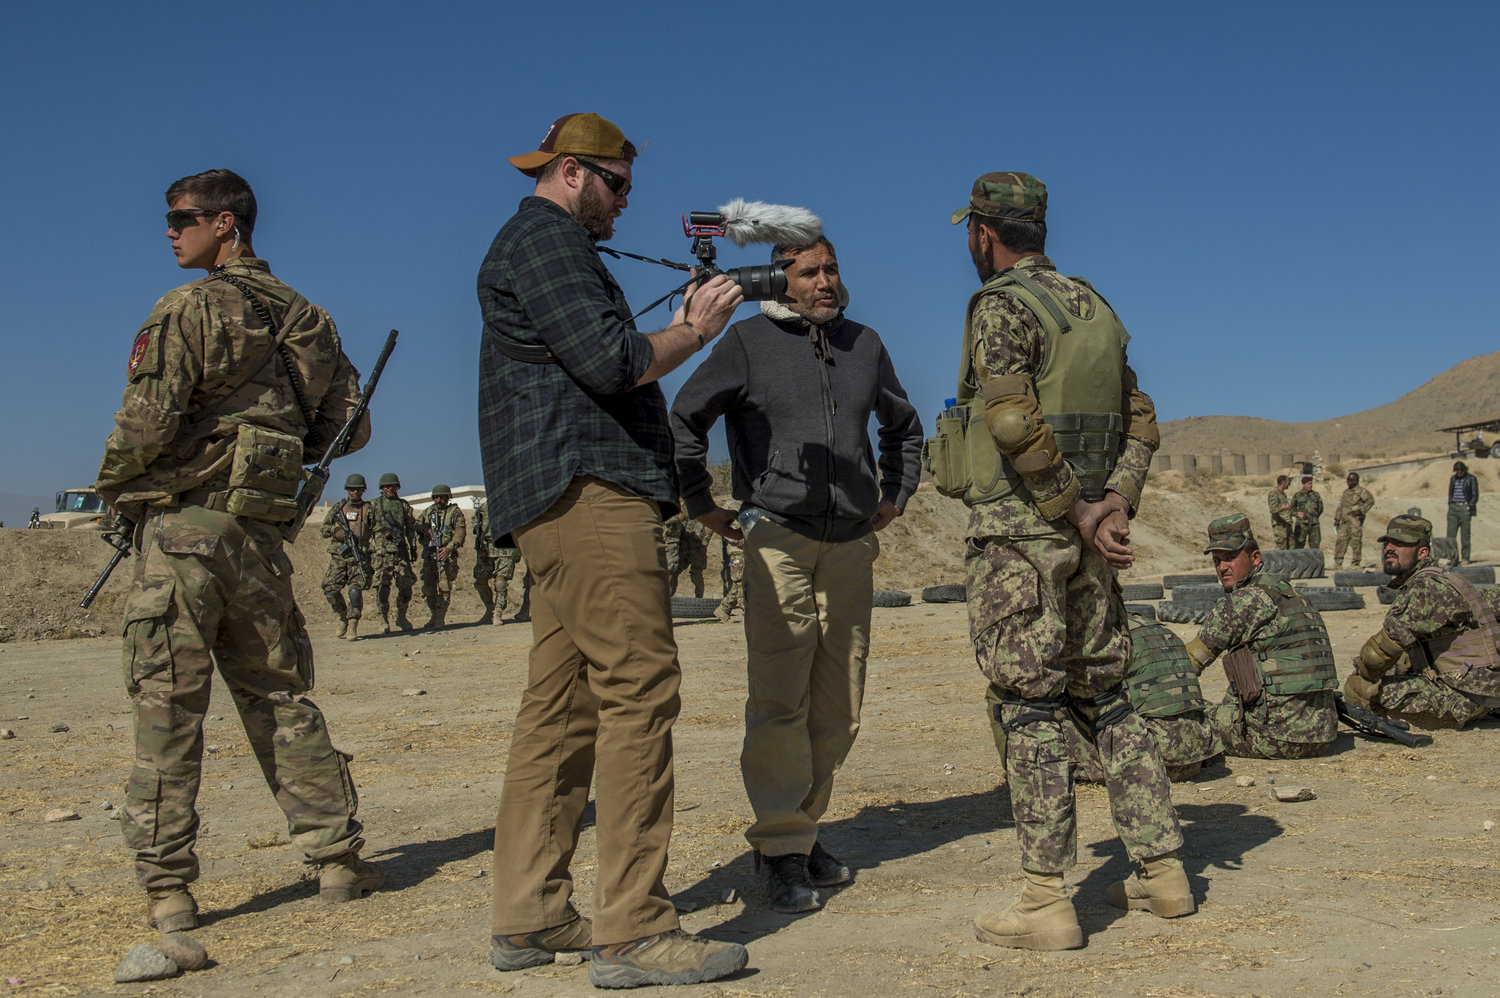 Interviewing the subject of one of my articles at Camp Commando just outside of Kabul. Off to the left of me was a U.S. soldier, known as a 'guardian angel', which was my primary means of protection while embedded.